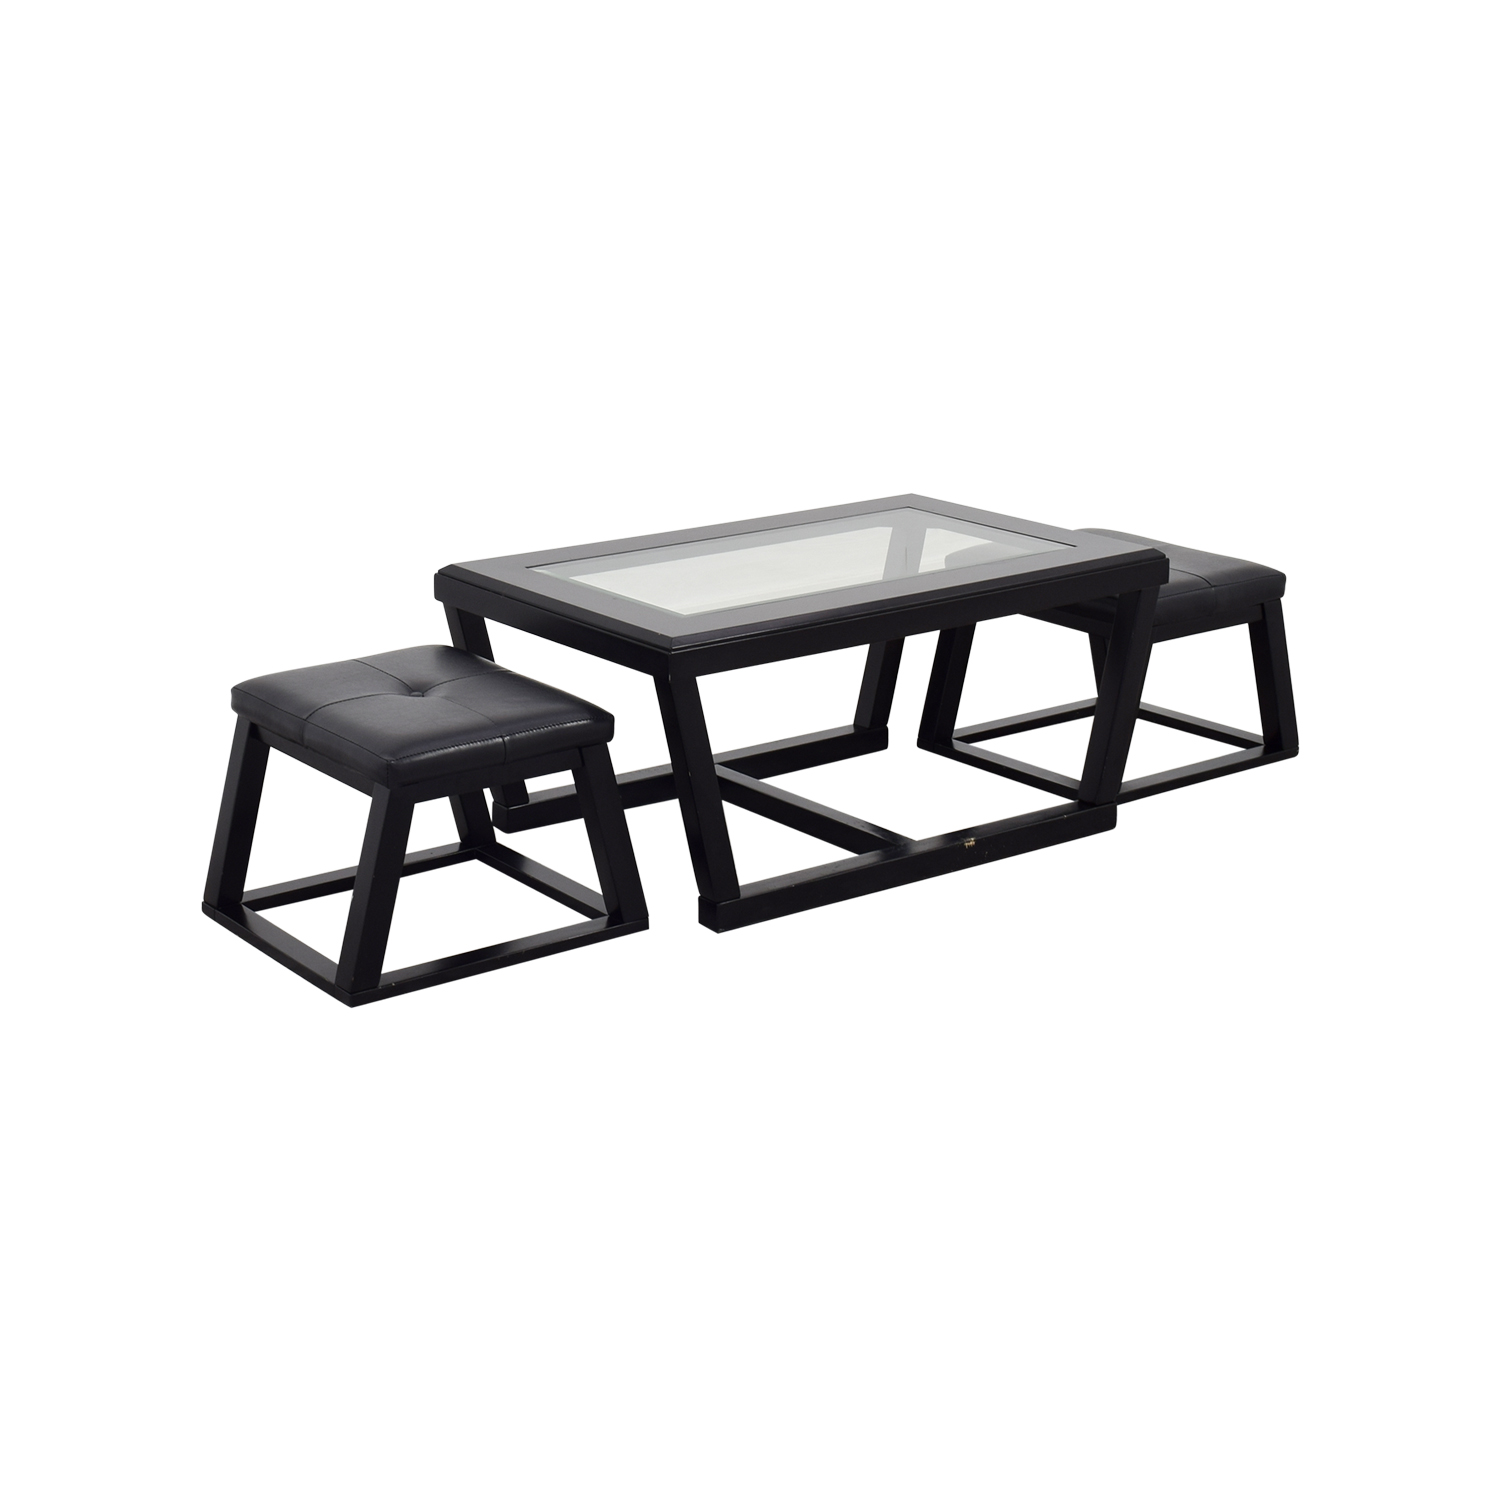 Ashley Furniture Distressed Coffee Table: Ashley Furniture Ashley Furniture Coffee Table